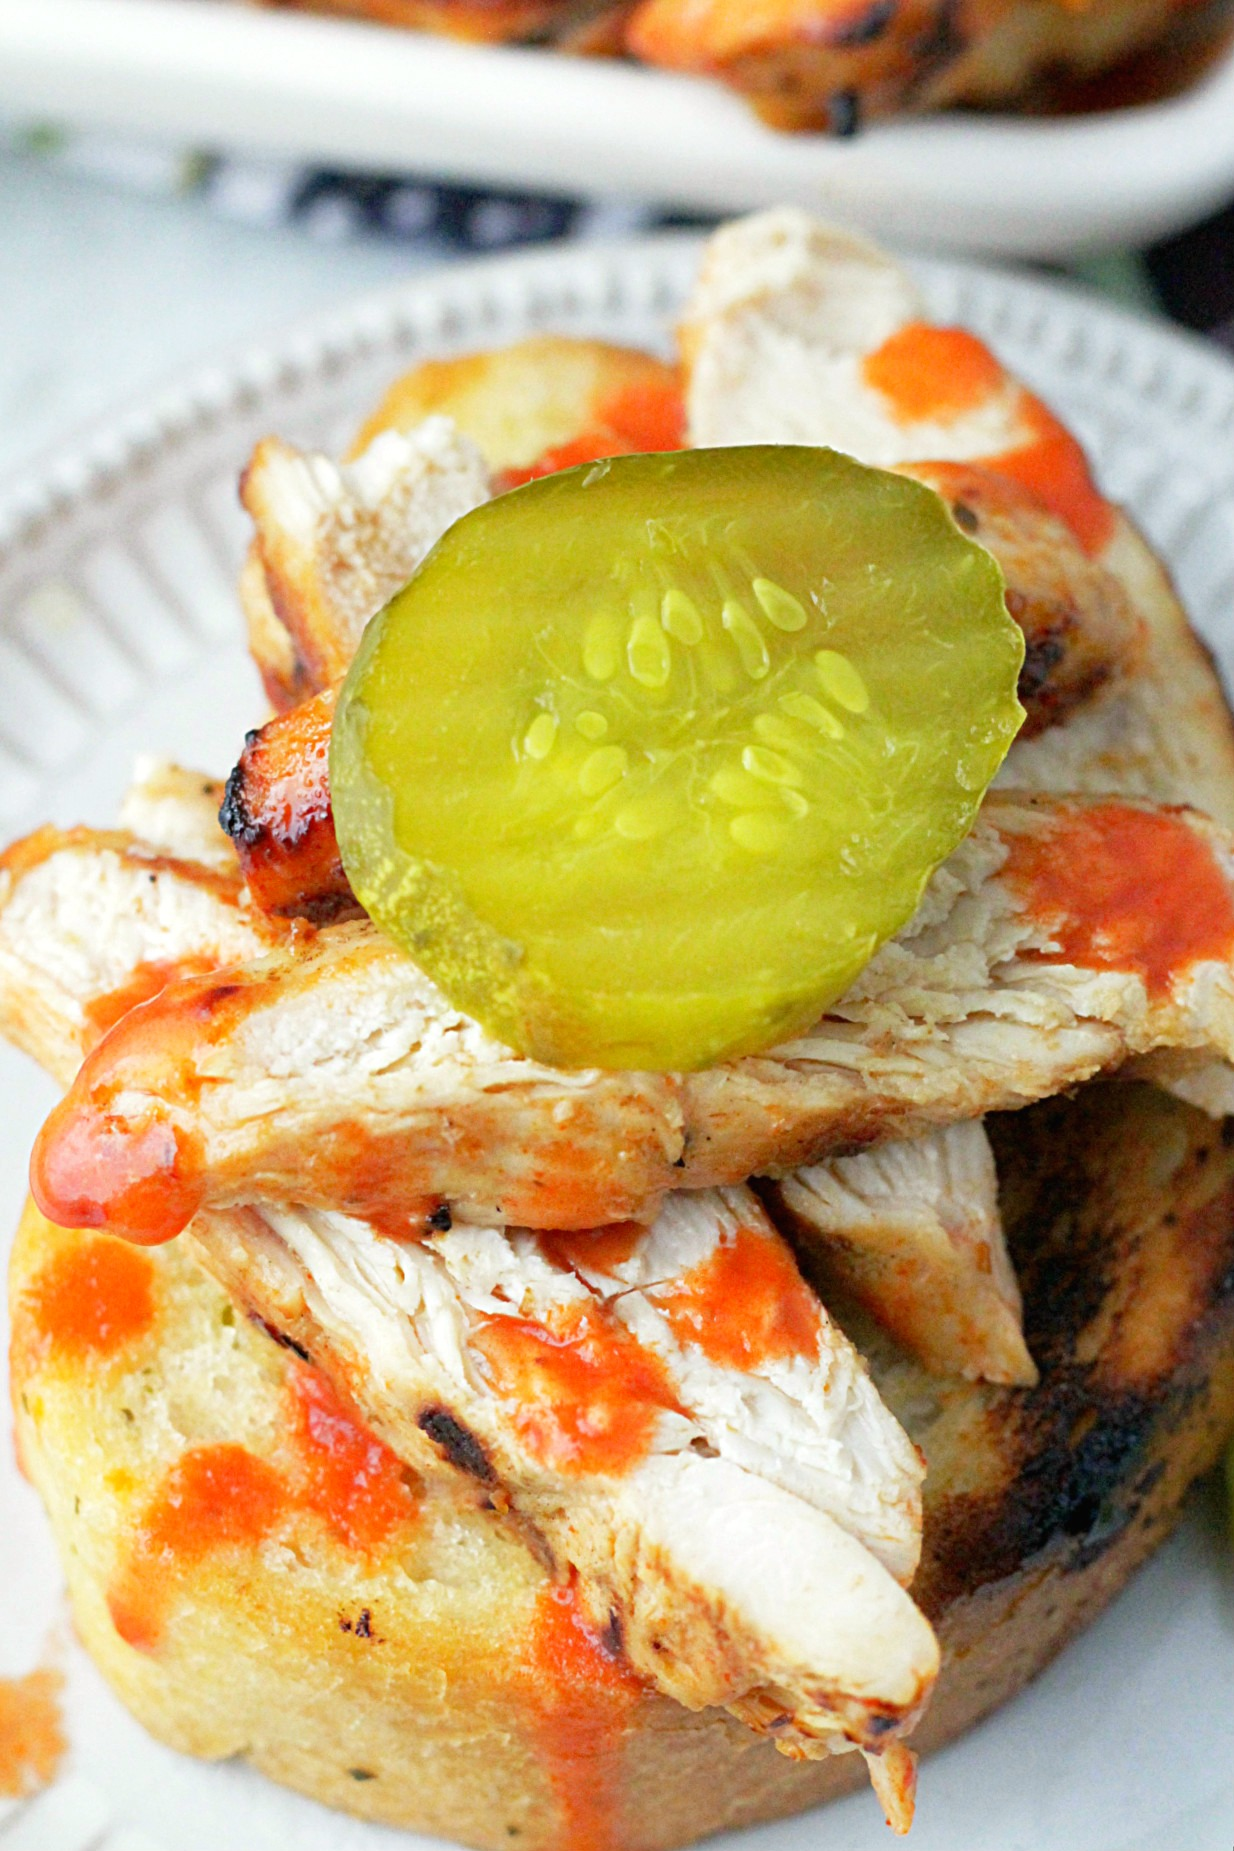 nashville hot grilled chicken on garlic bread topped with a dill pickle slice